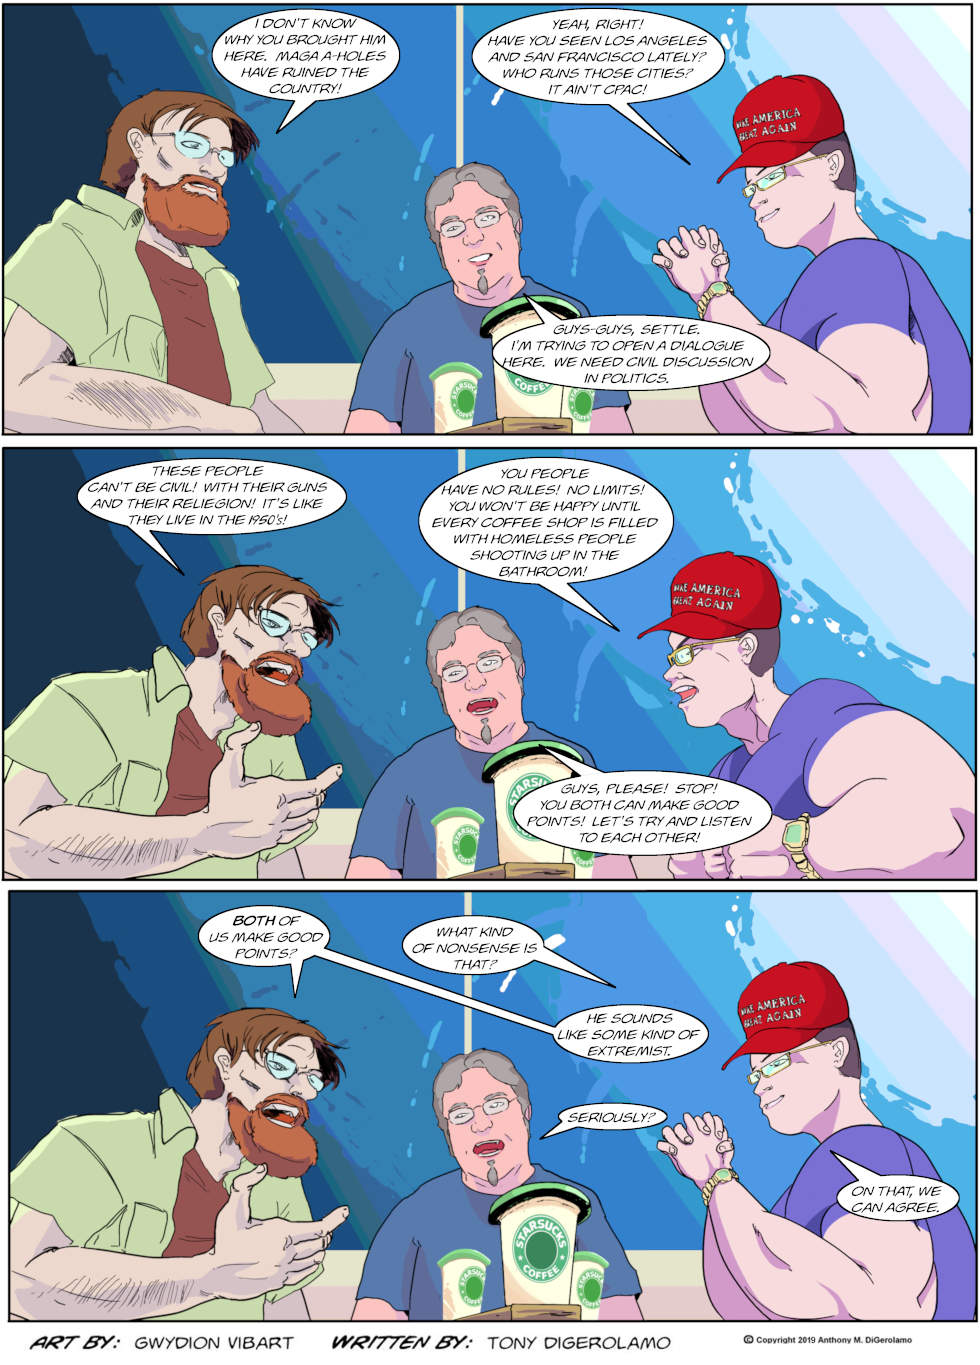 The Antiwar Comic: The Extremist